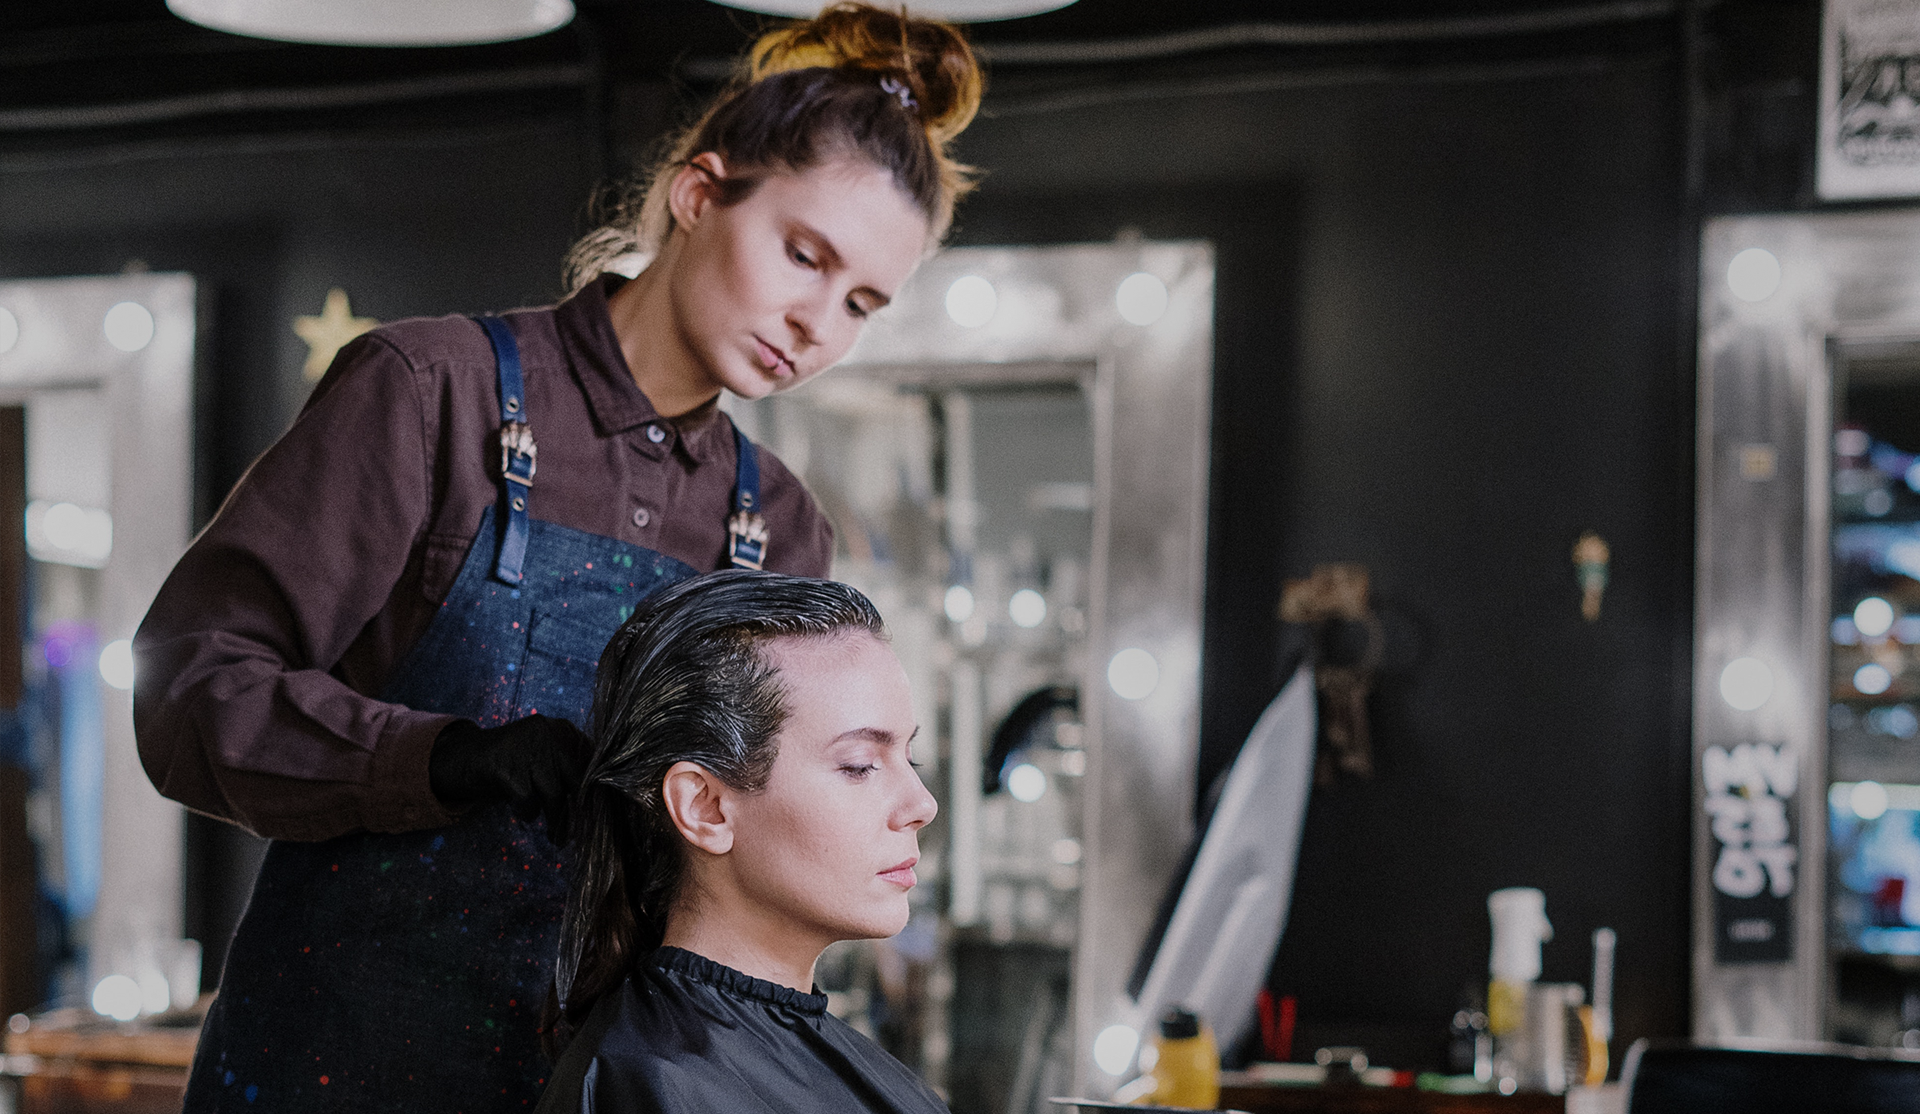 Get your Networking Profiles strong with an Online Salon Booking System